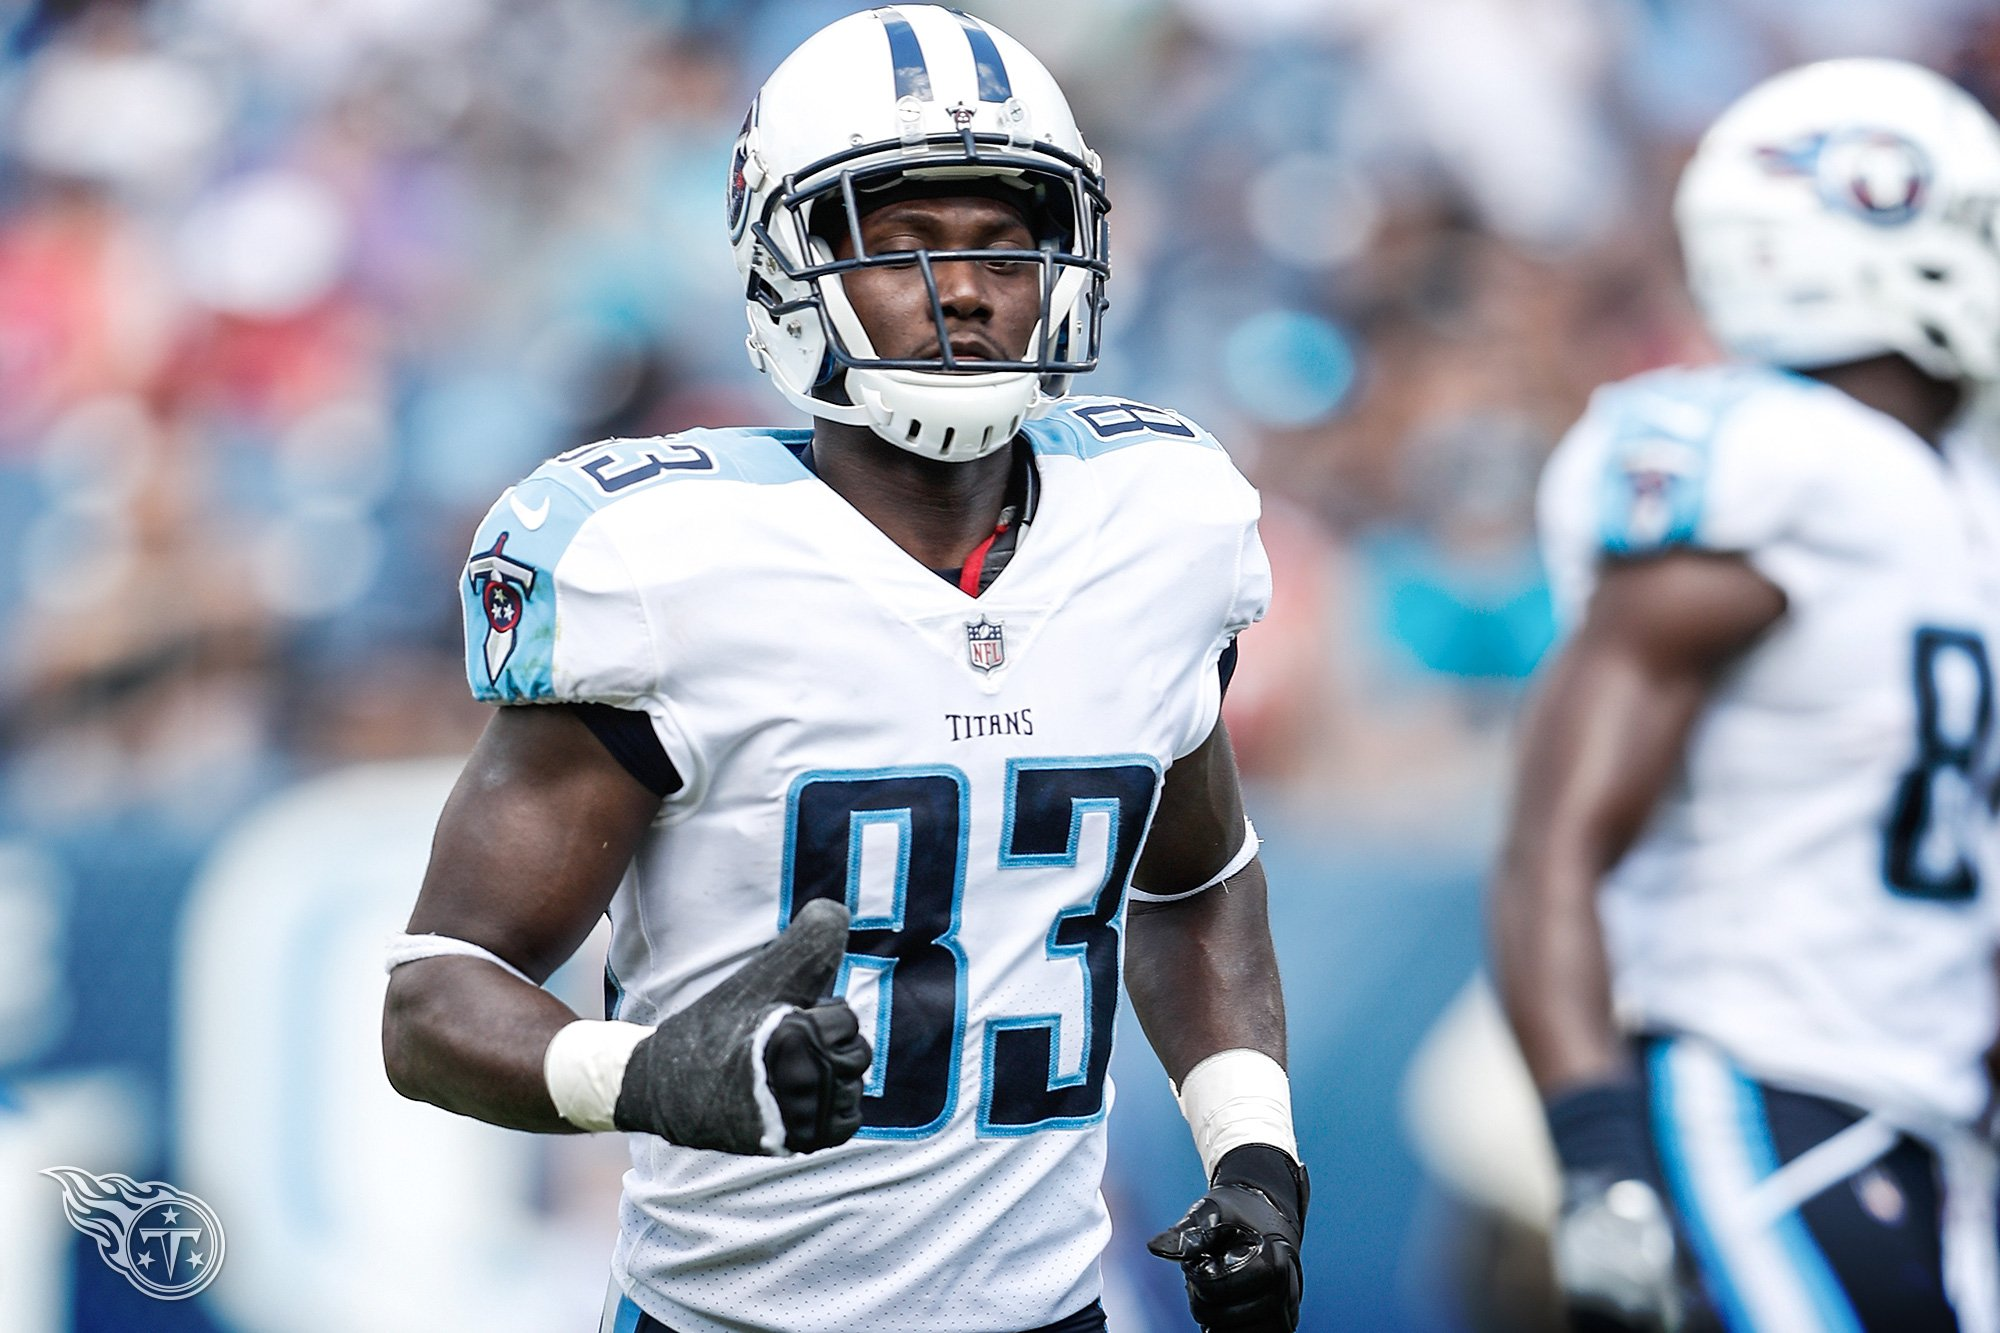 #Titans activate WR Harry Douglas to 53-man roster #TitanUp   Roster Moves �� » https://t.co/YWpc7kSx86 https://t.co/09zSnyJYcO